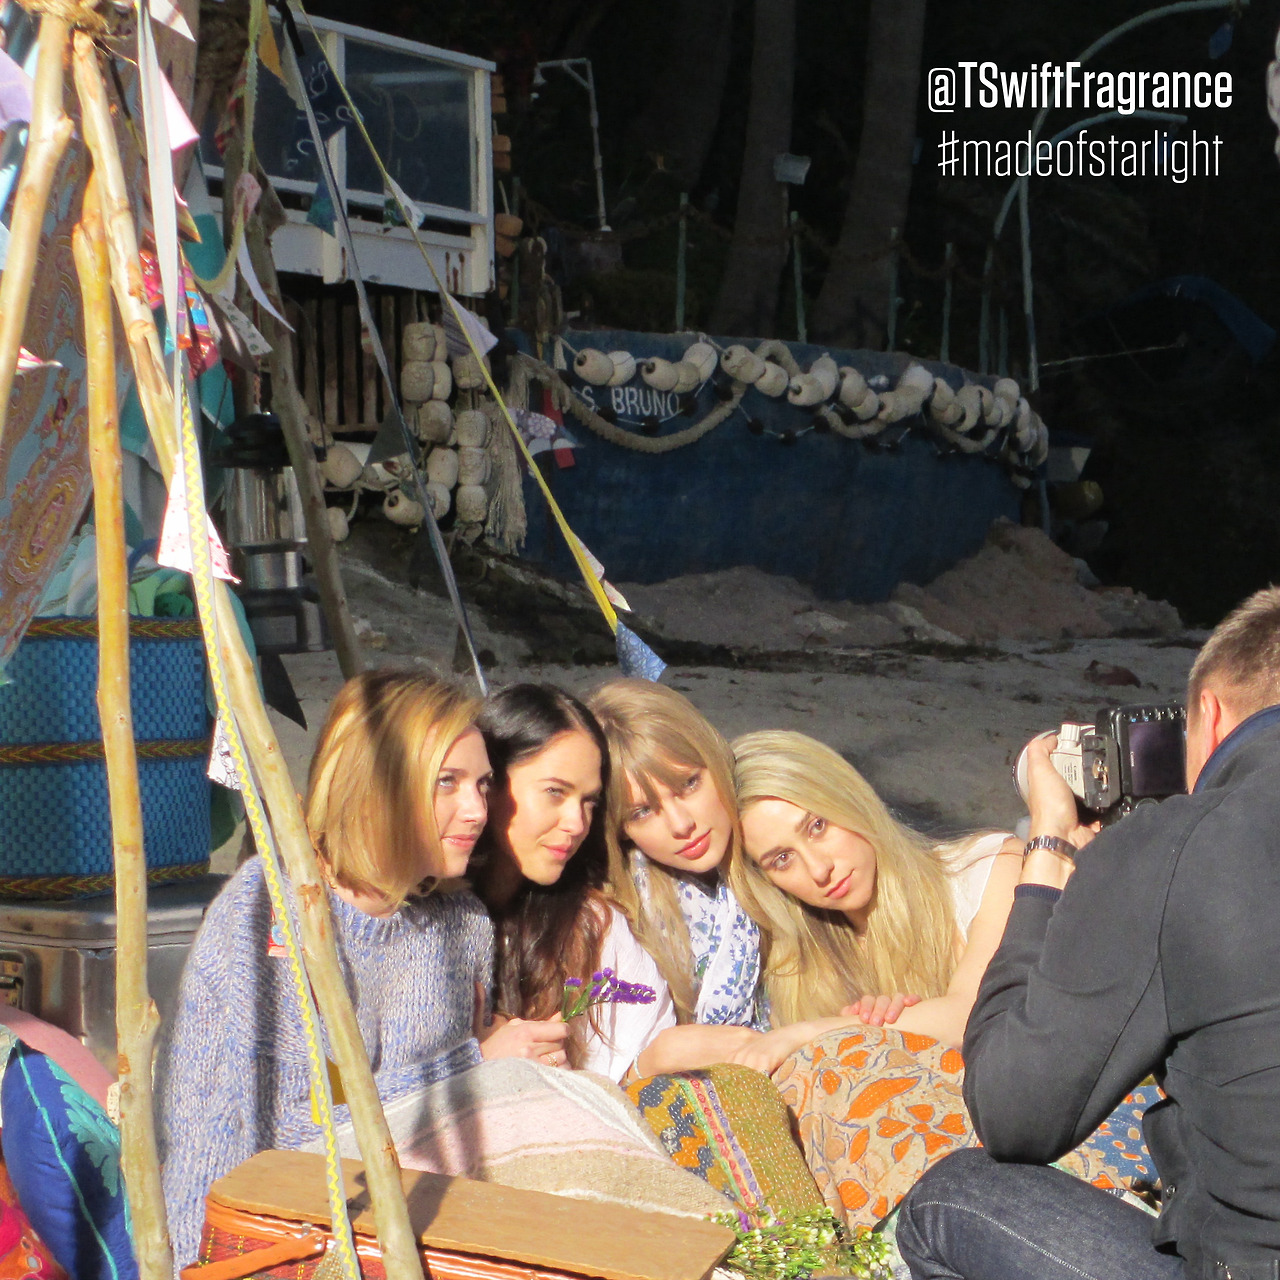 http://www.taylorpictures.net/albums/other/fragrances/taylorbytaylorswift/behindthescenes/009.jpg